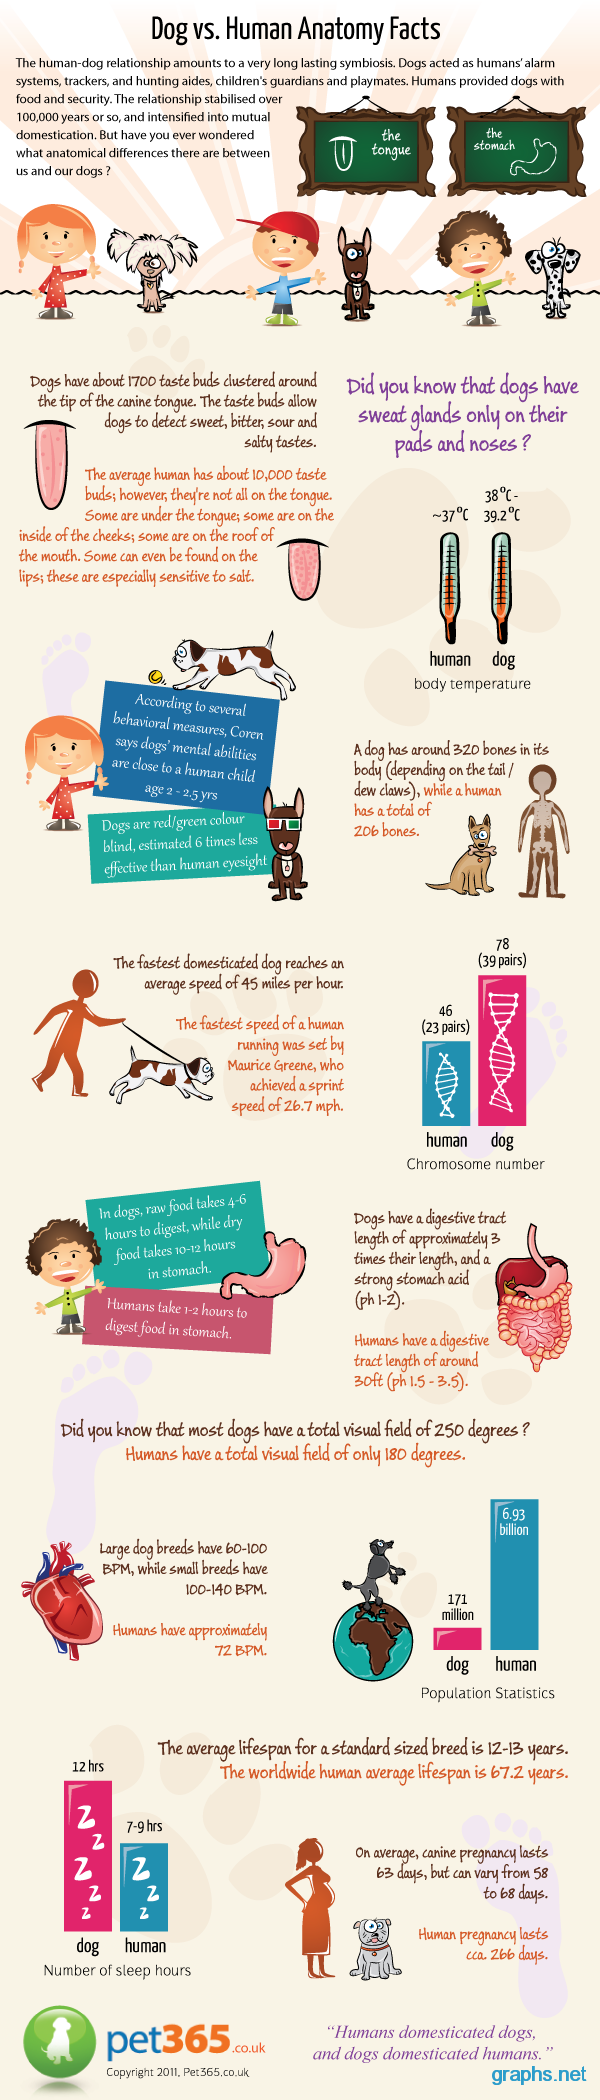 facts about dogs vs humans